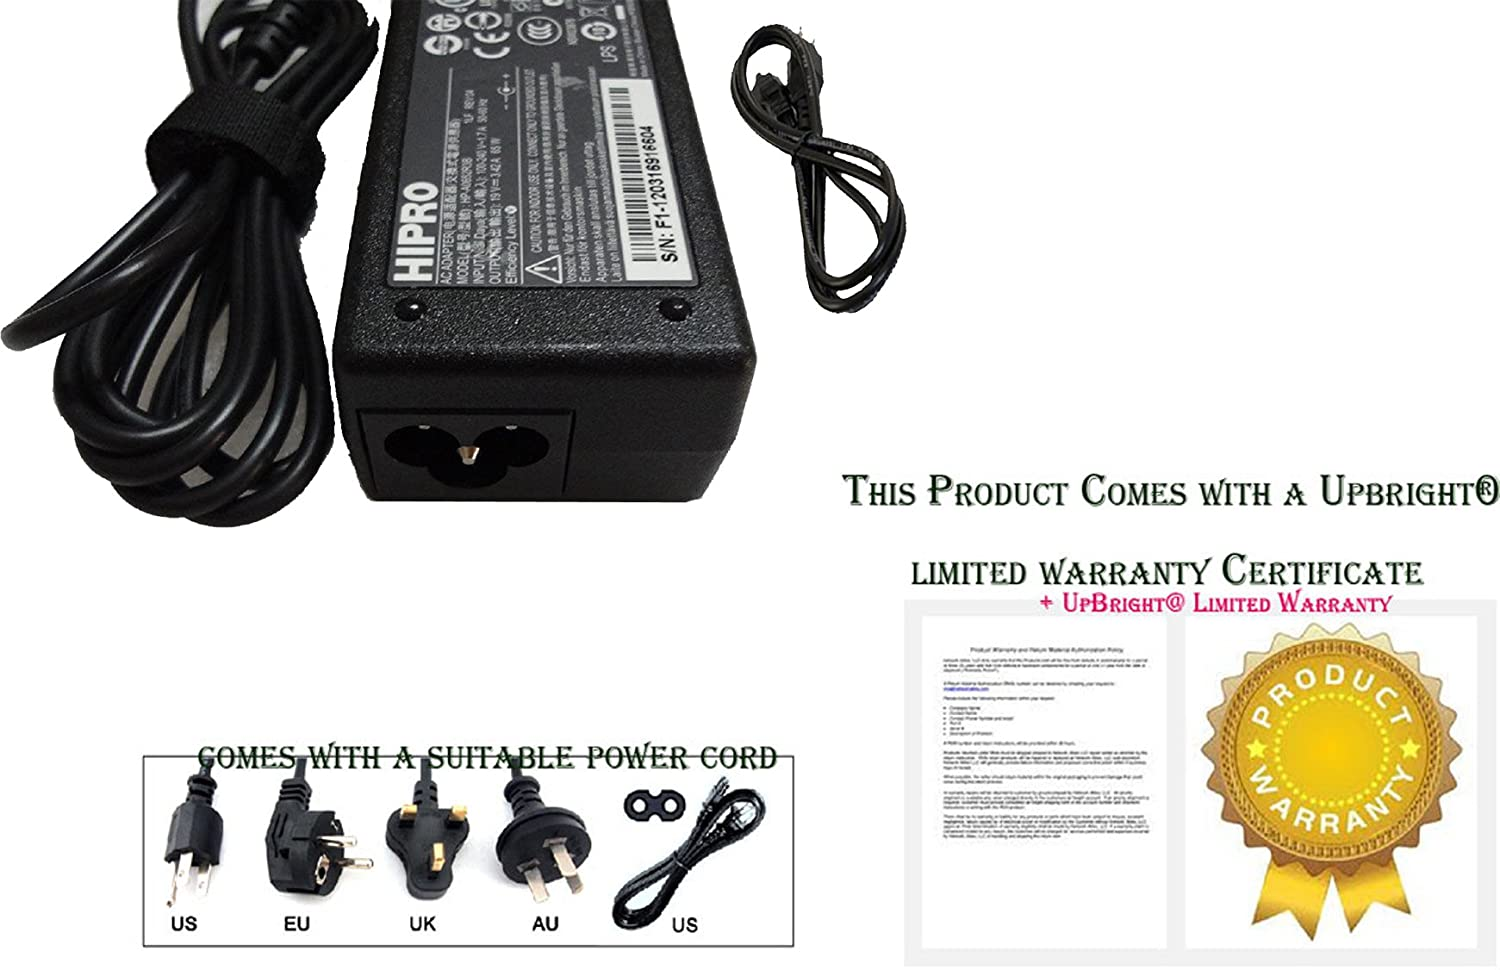 Amazon.com: Laptop Notebook Charger for Acer Aspire F5-571-50S0 F5-571T-569T Adapter Adaptor Power Supply (Power Cord Included): Computers & Accessories